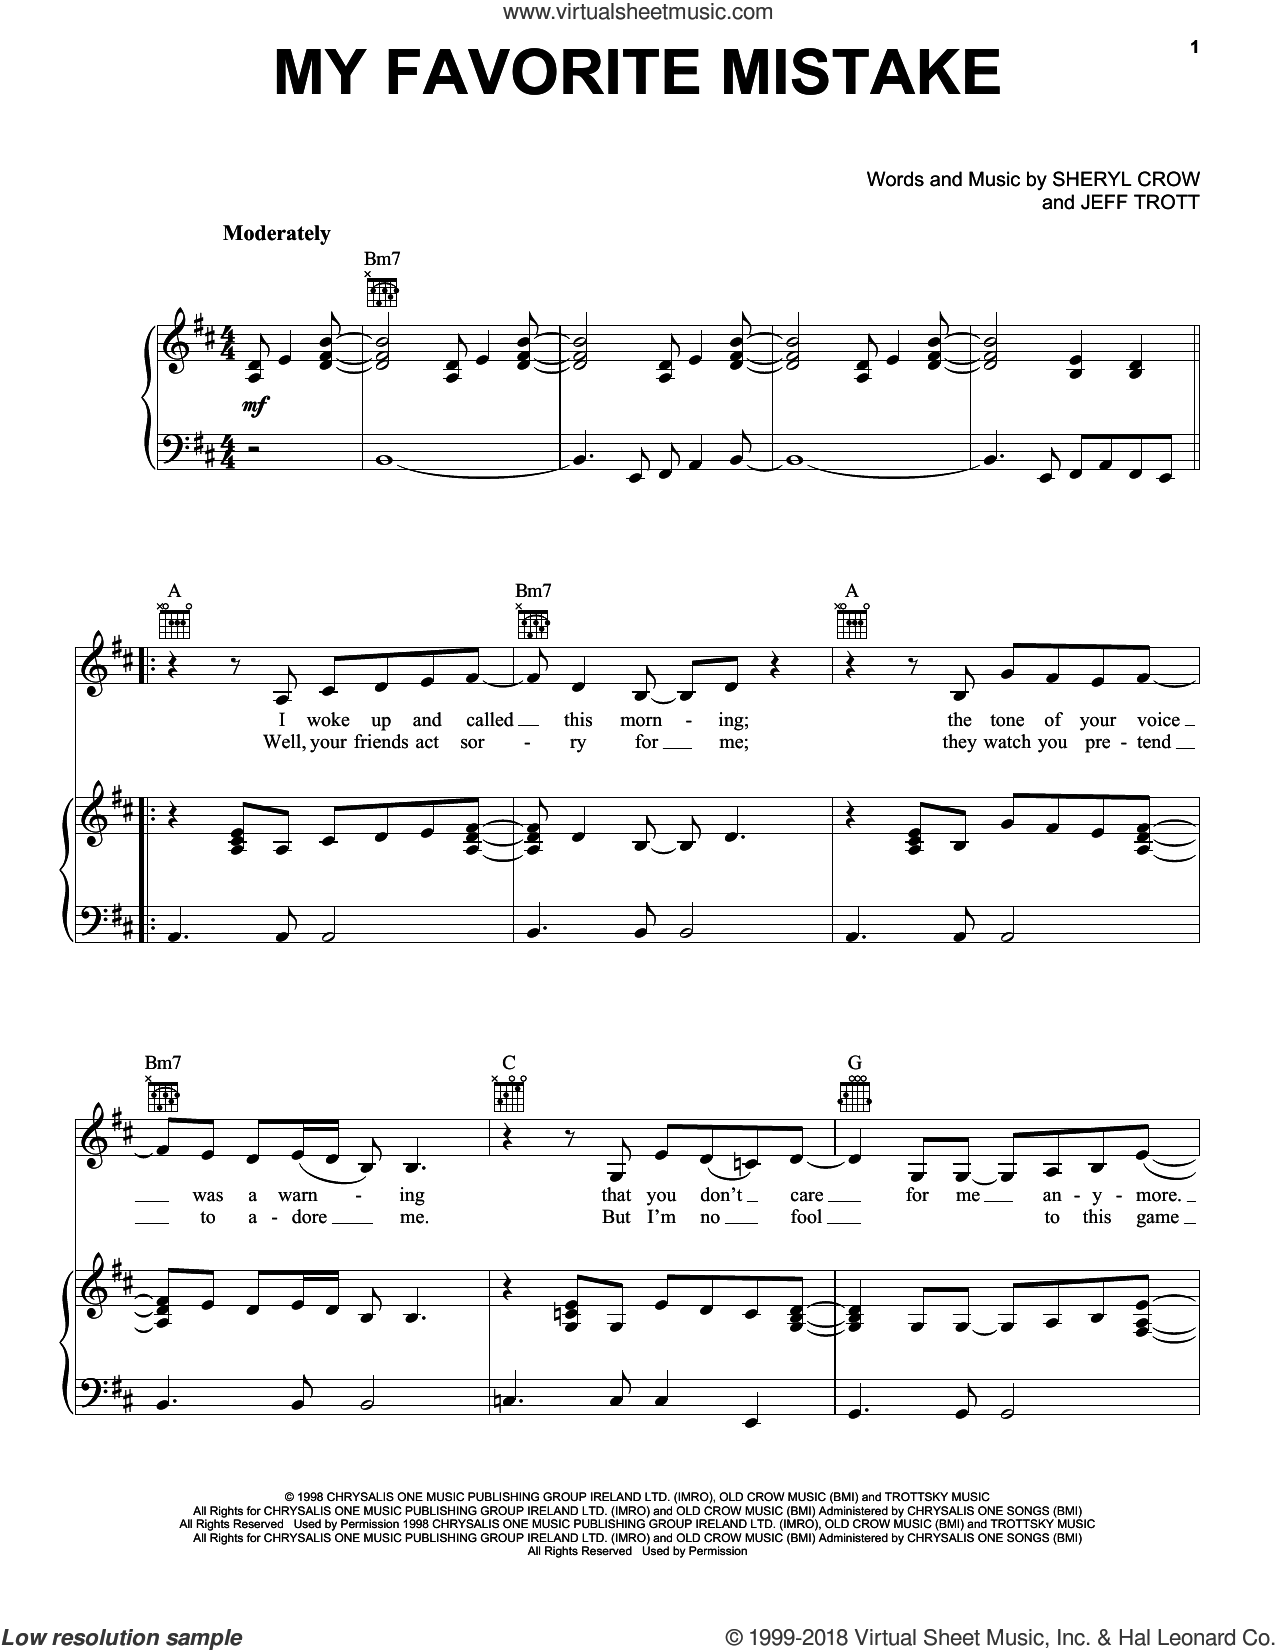 My Favorite Mistake sheet music for voice, piano or guitar by Sheryl Crow and Jeff Trott, intermediate skill level